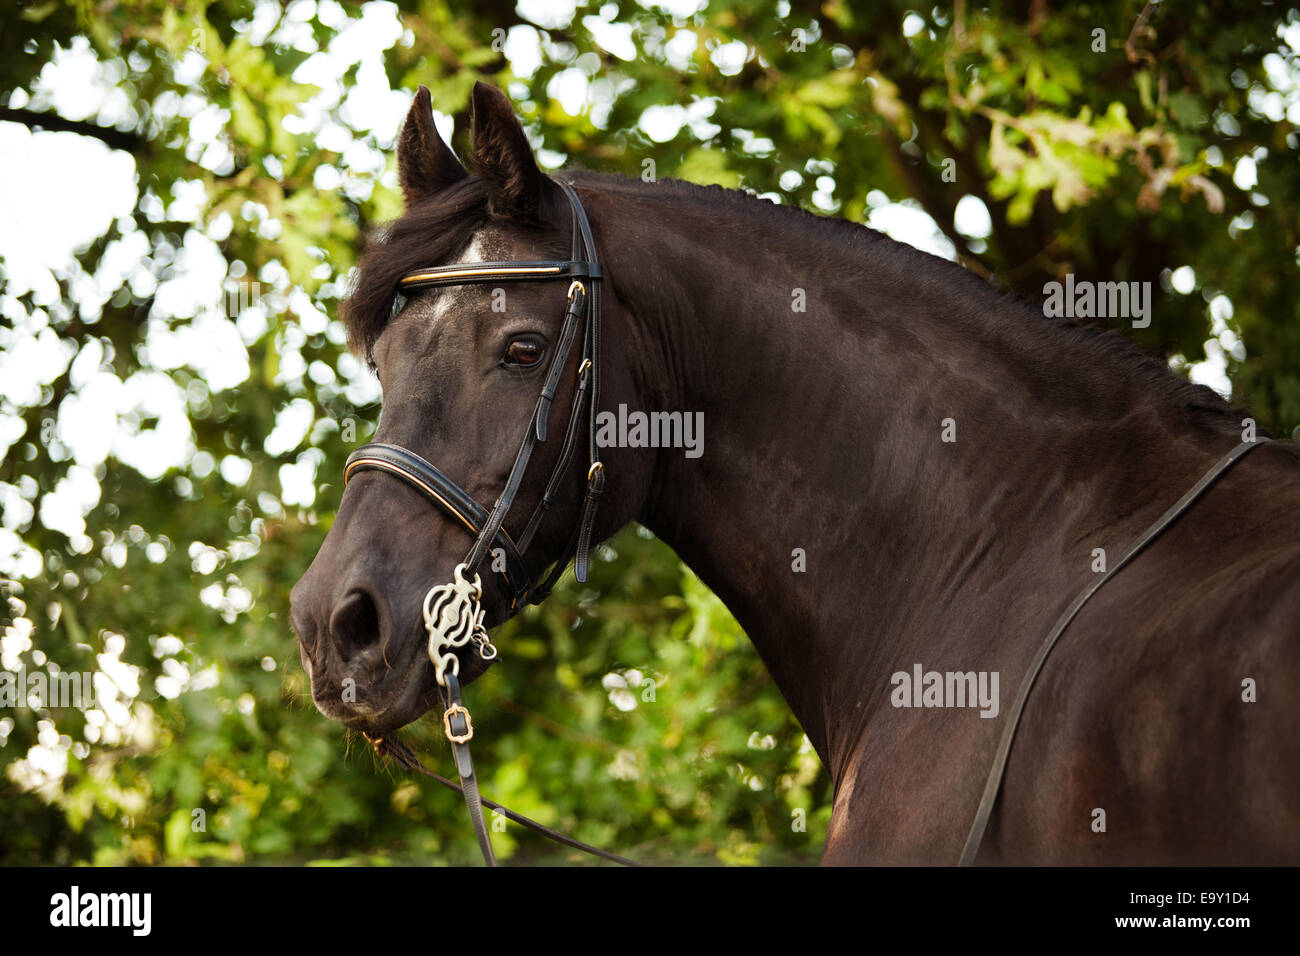 Friesian horse, mature gelding, with a bridle and a baroque harness Stock Photo